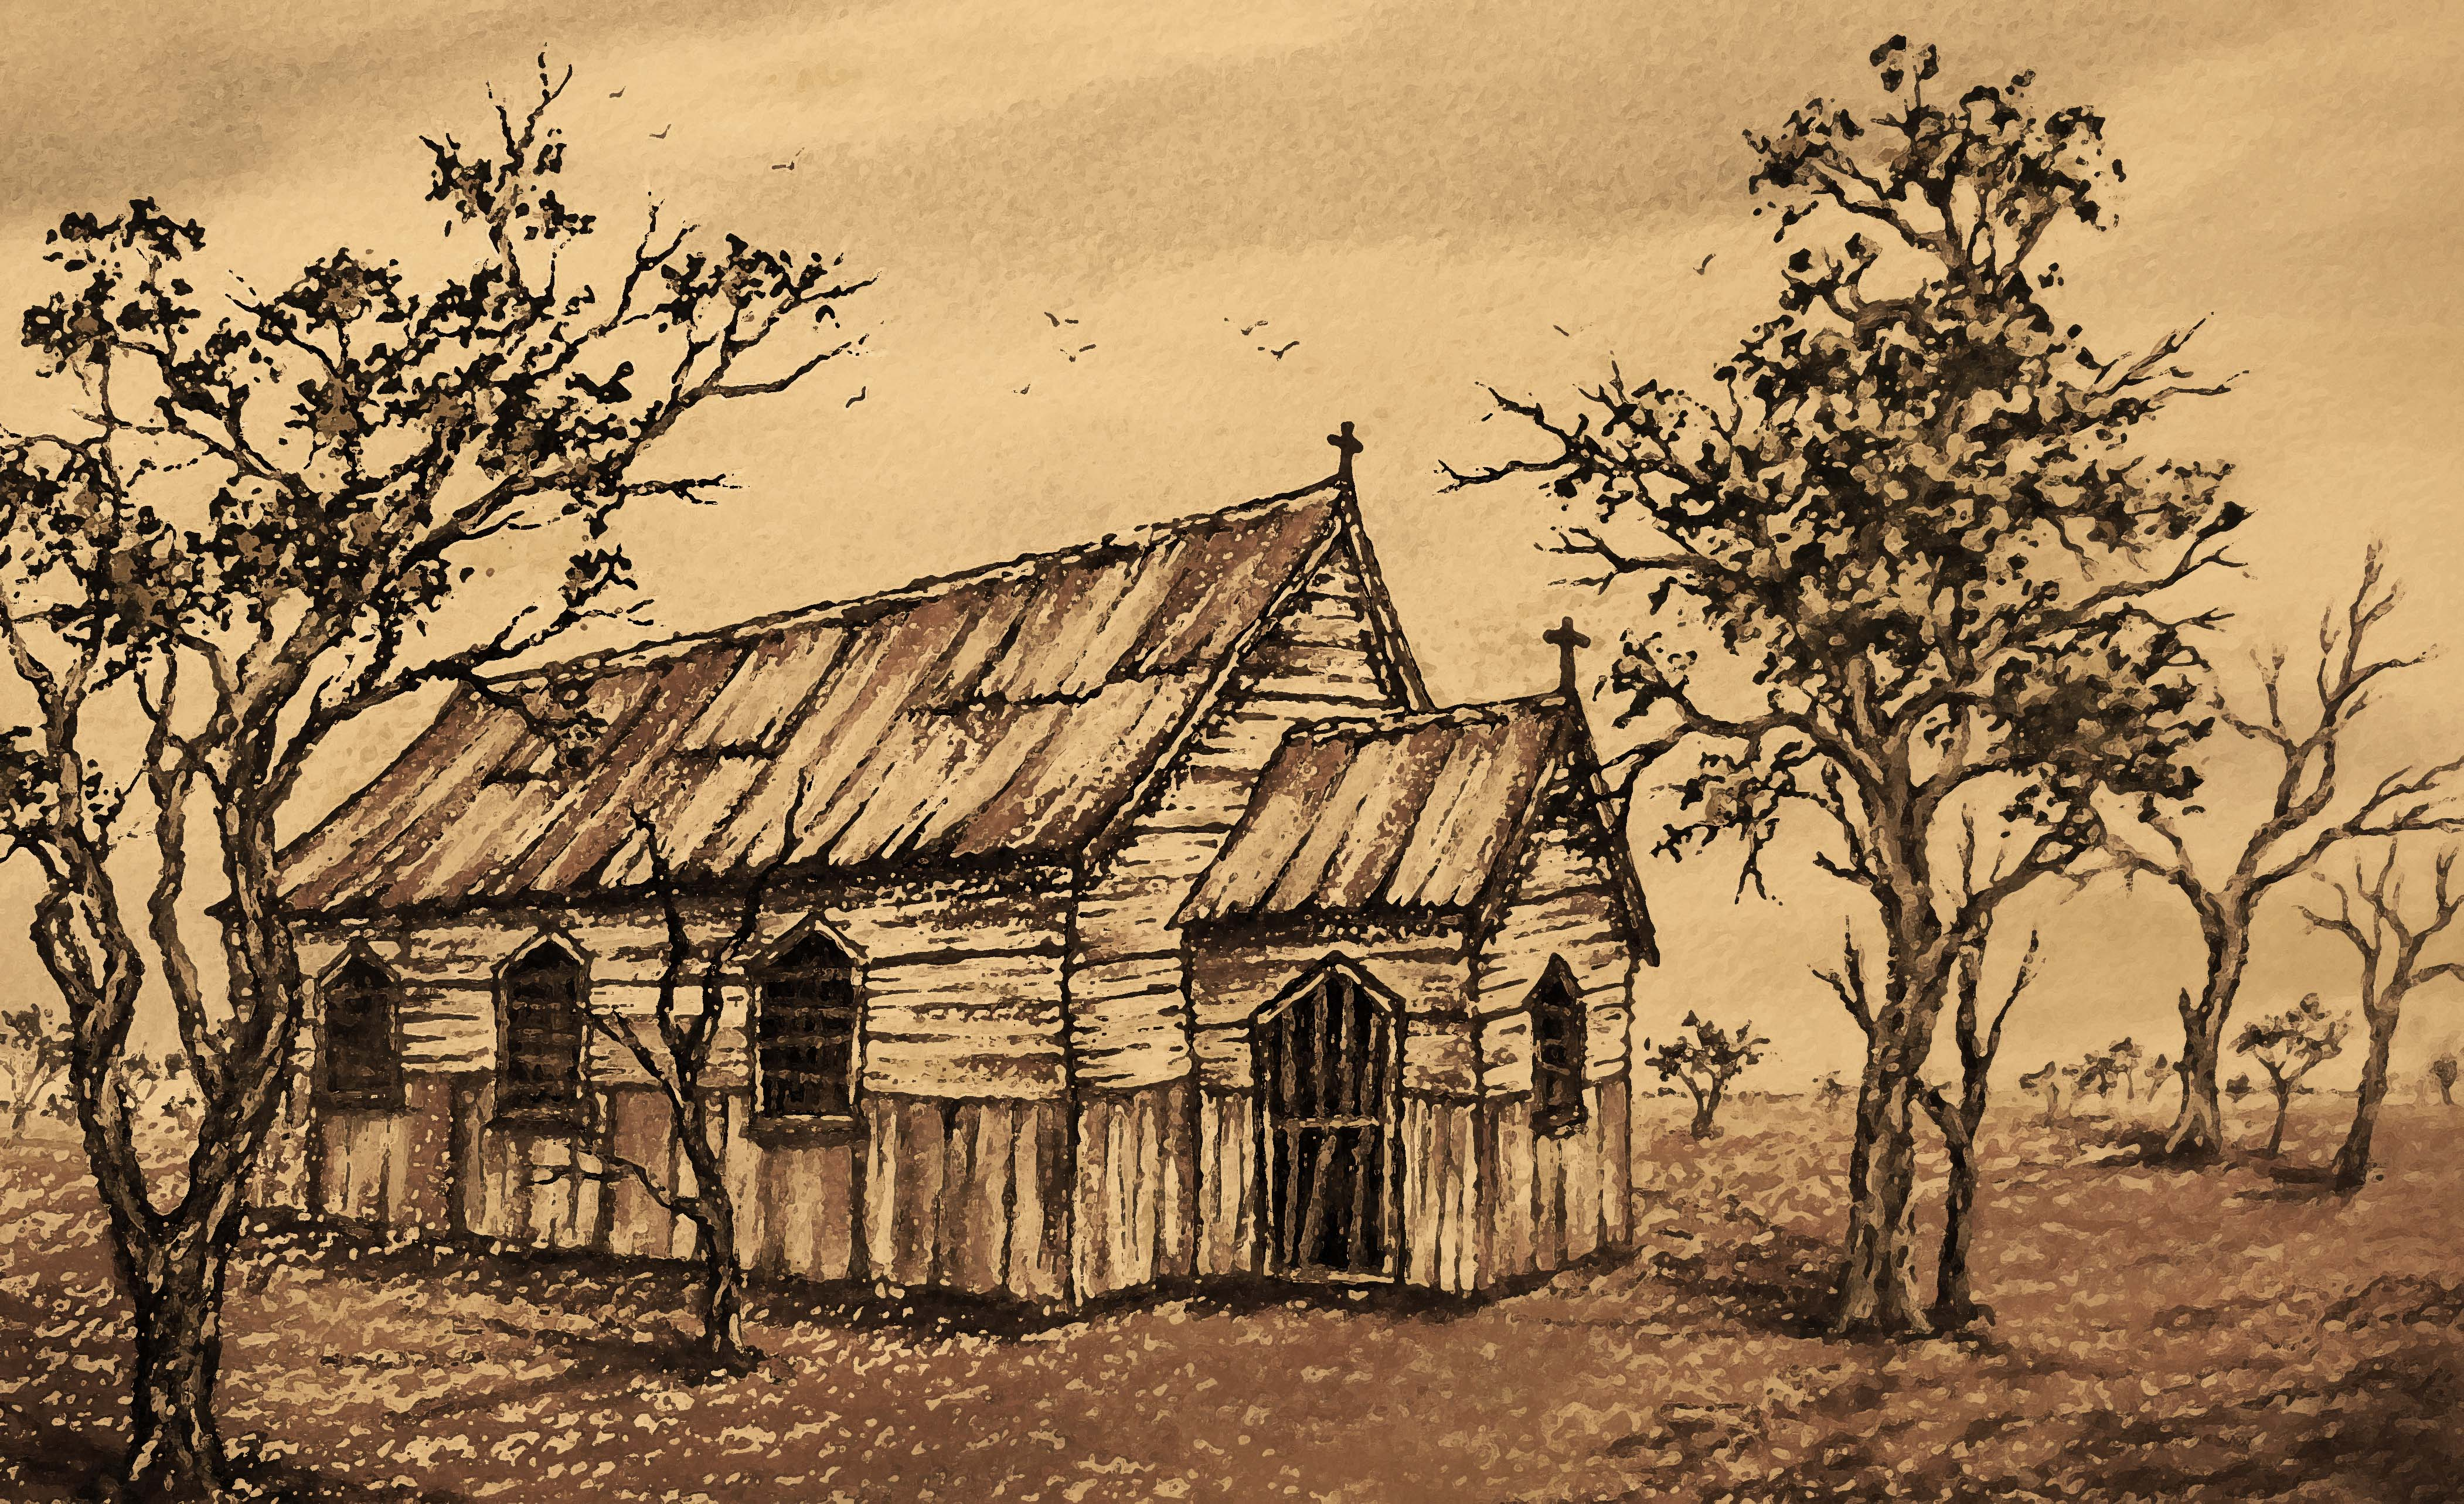 Australian Outback Church Paintings | Tracts4free